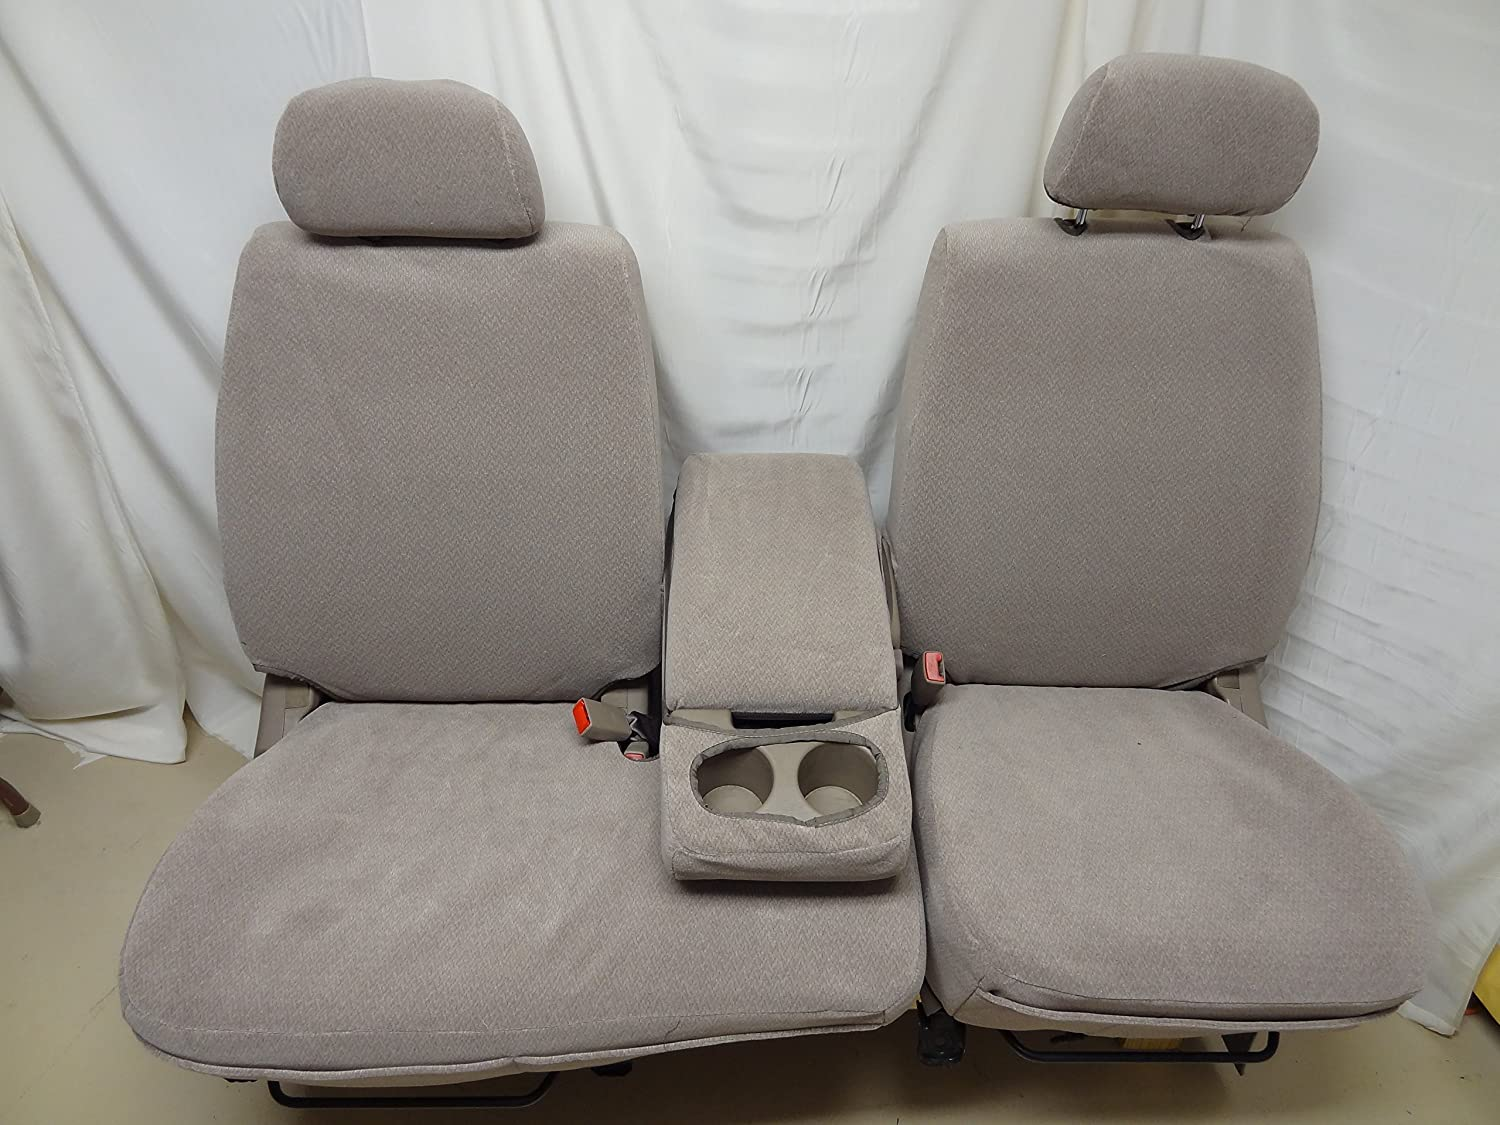 Durafit Seat Covers, Made to fit 2000-2004 Tundra Front 40/60 Split Seats with Fold Down Console. Dark Gray Twill with Gray Velor Inserts.